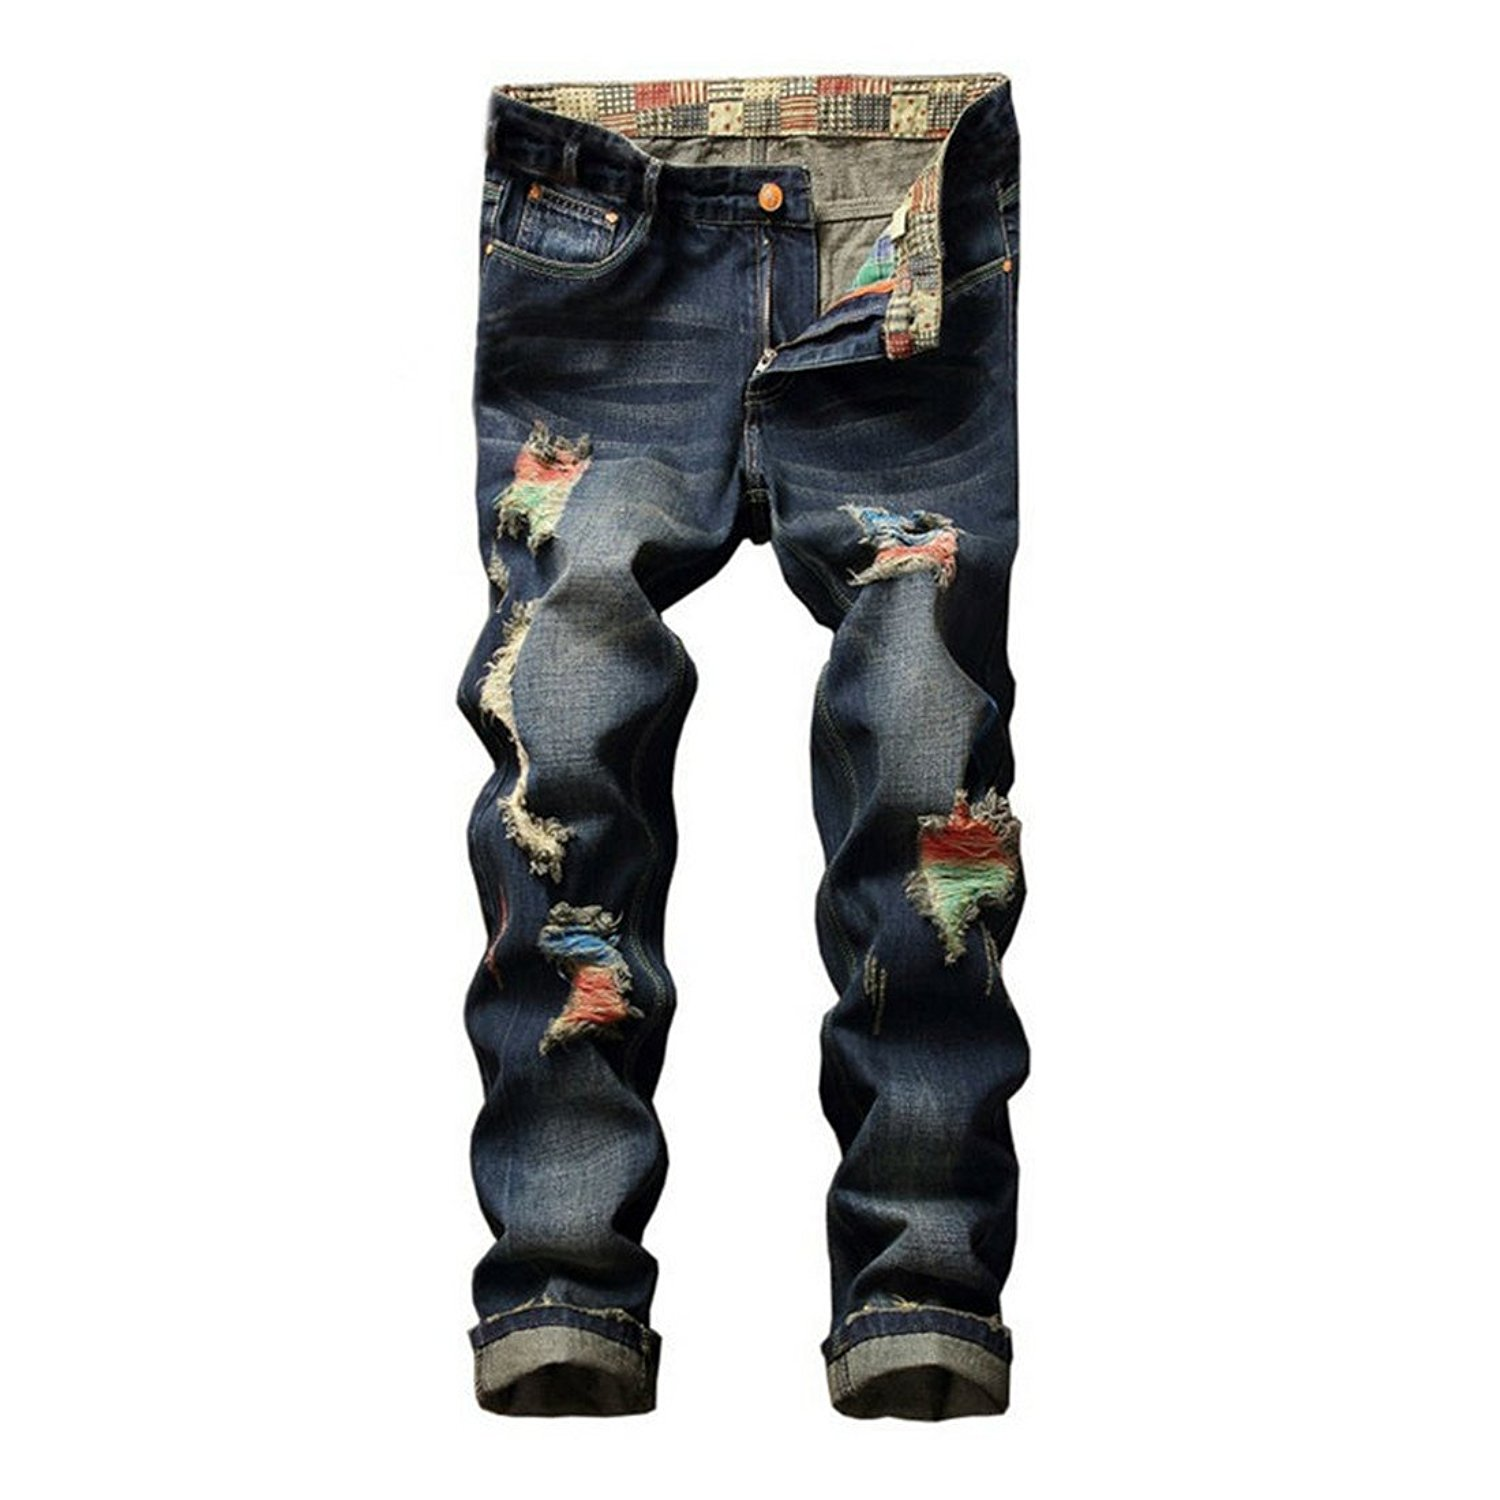 Hzcx Fashion Men's Ripped Distressed Brushed Slim Fit Tapered Leg Jeans